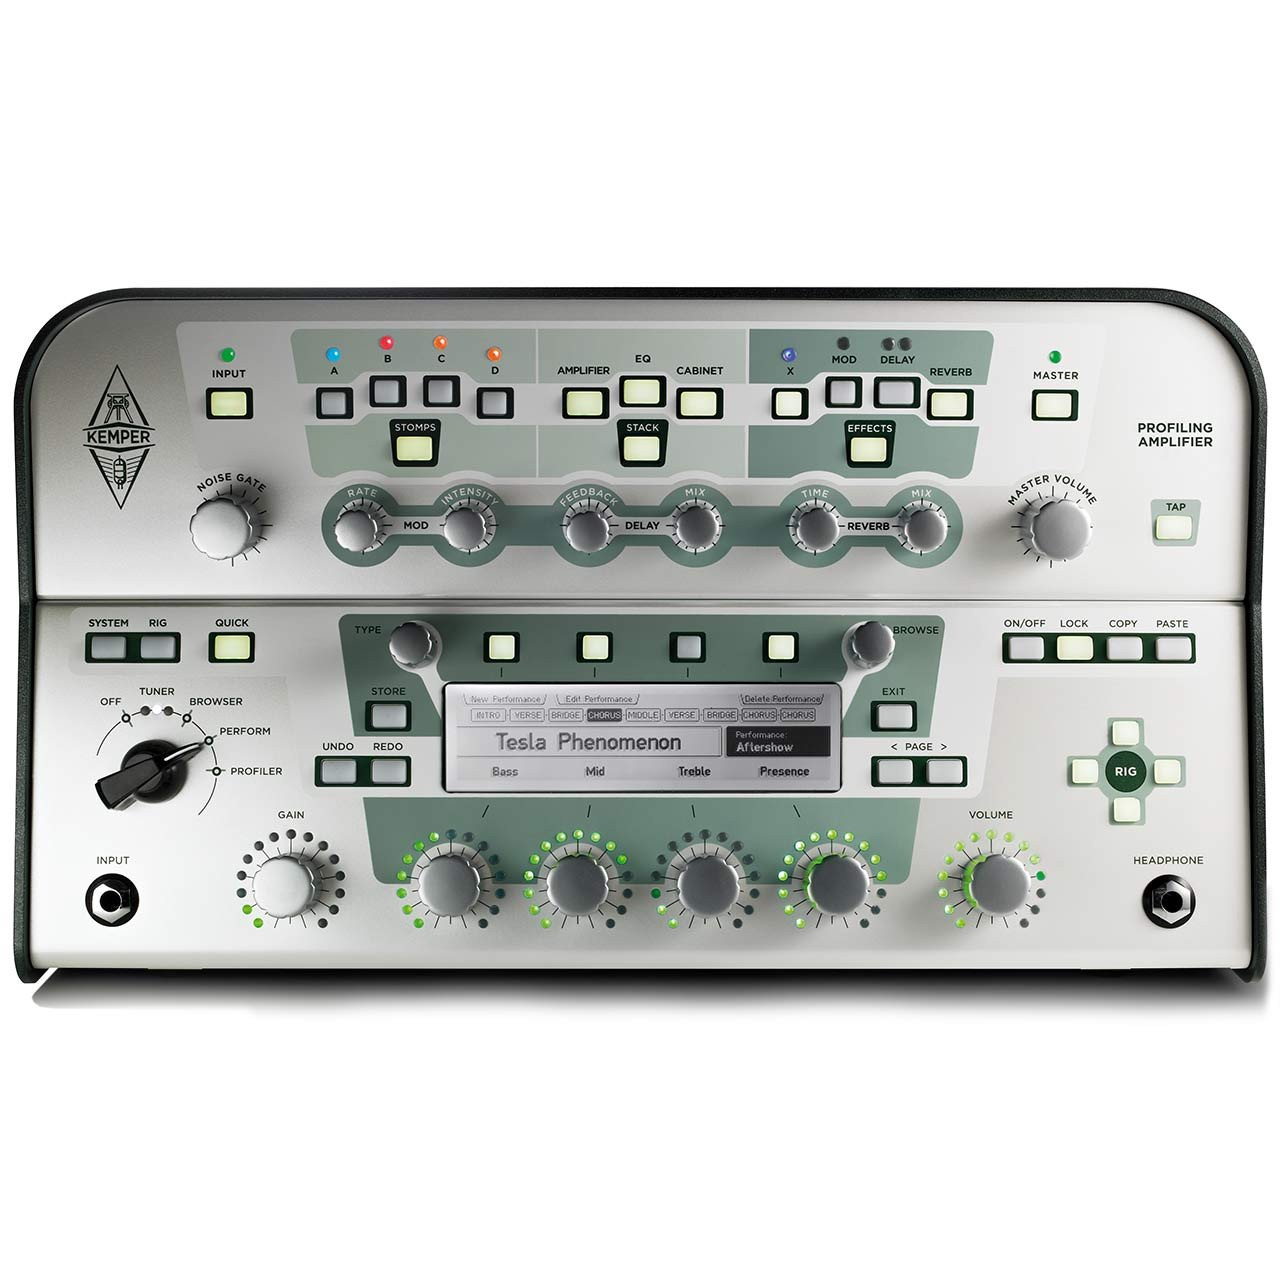 Kemper Profiler Head - Profiling Amplifier White